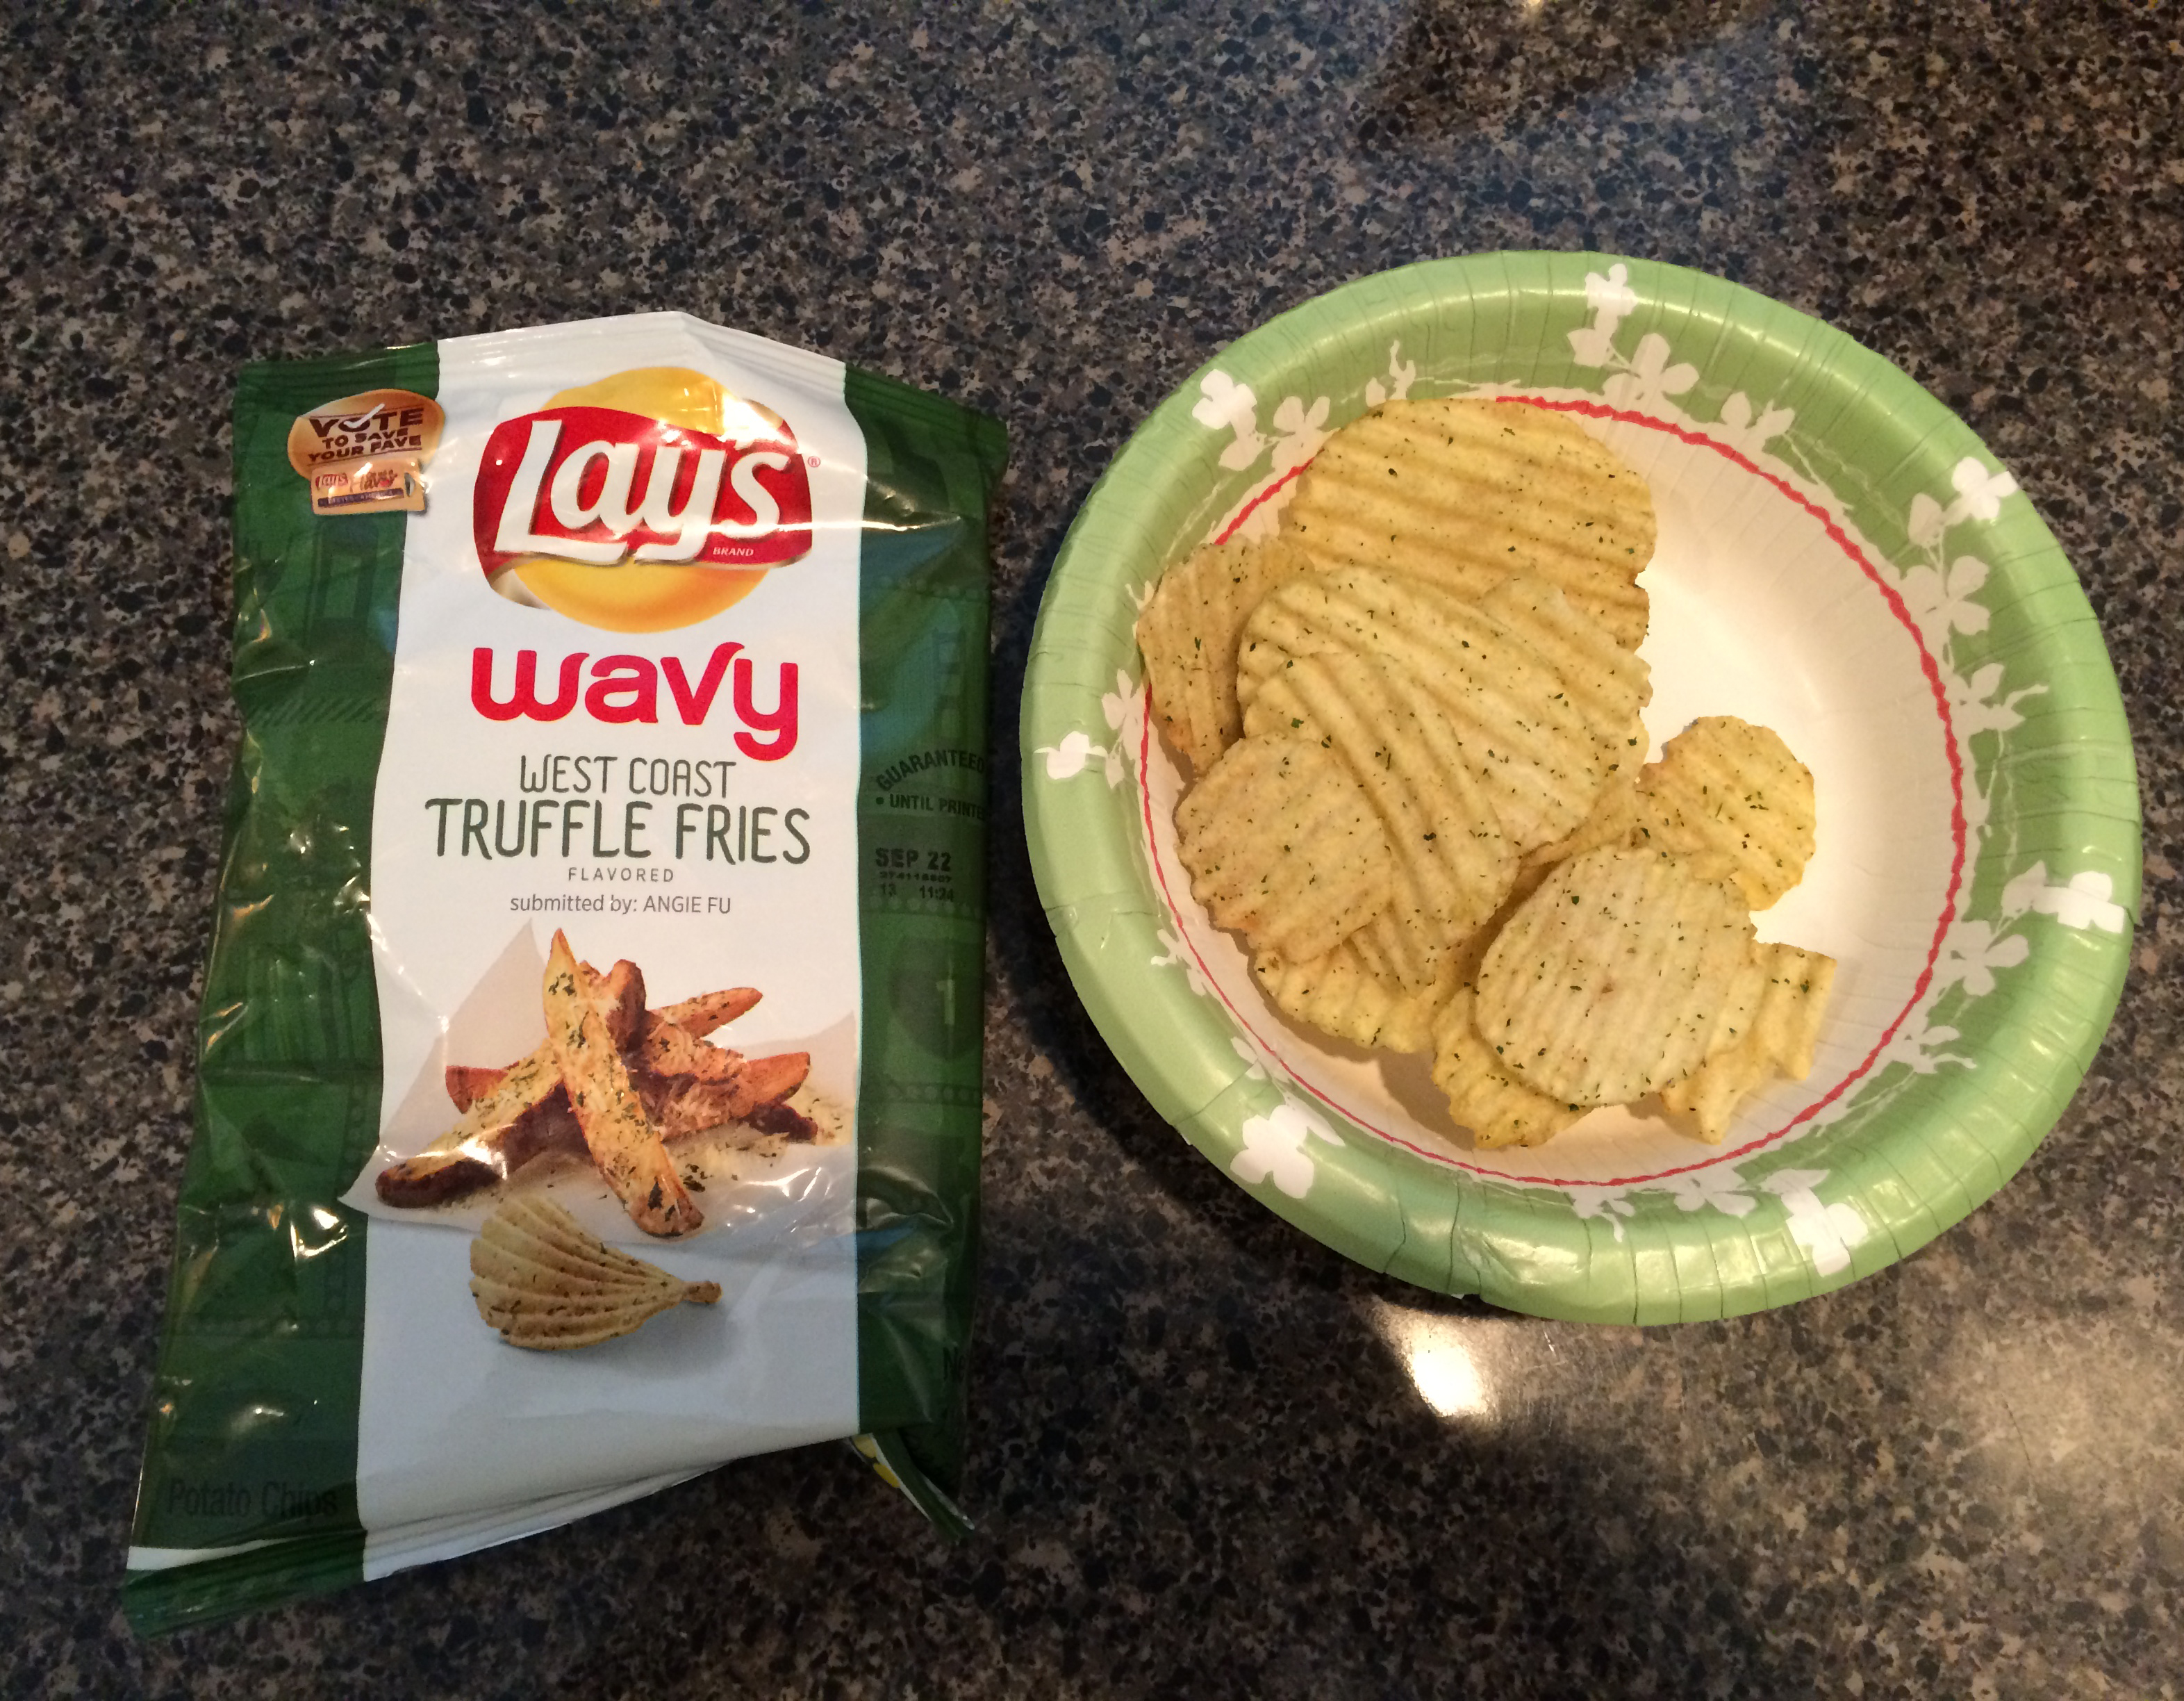 The #DoUsAFlavor West Coast Truffle Fries chips had a pleasant, authentic flavor. They are good for snacking.